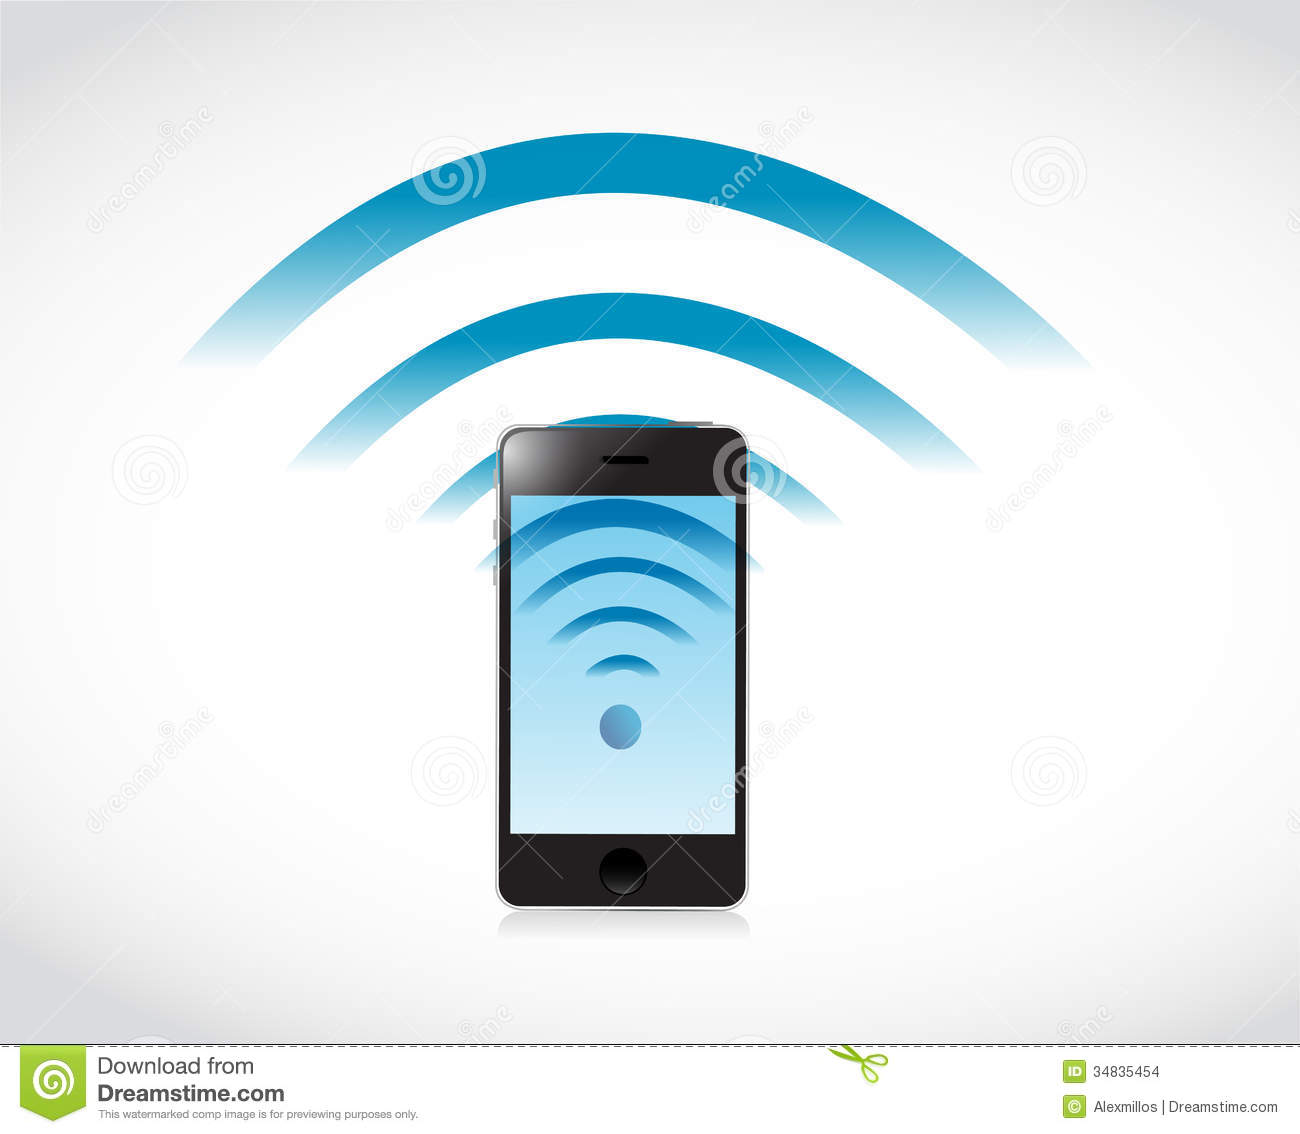 Phone connection wifi illustration design stock images for Architecture wifi